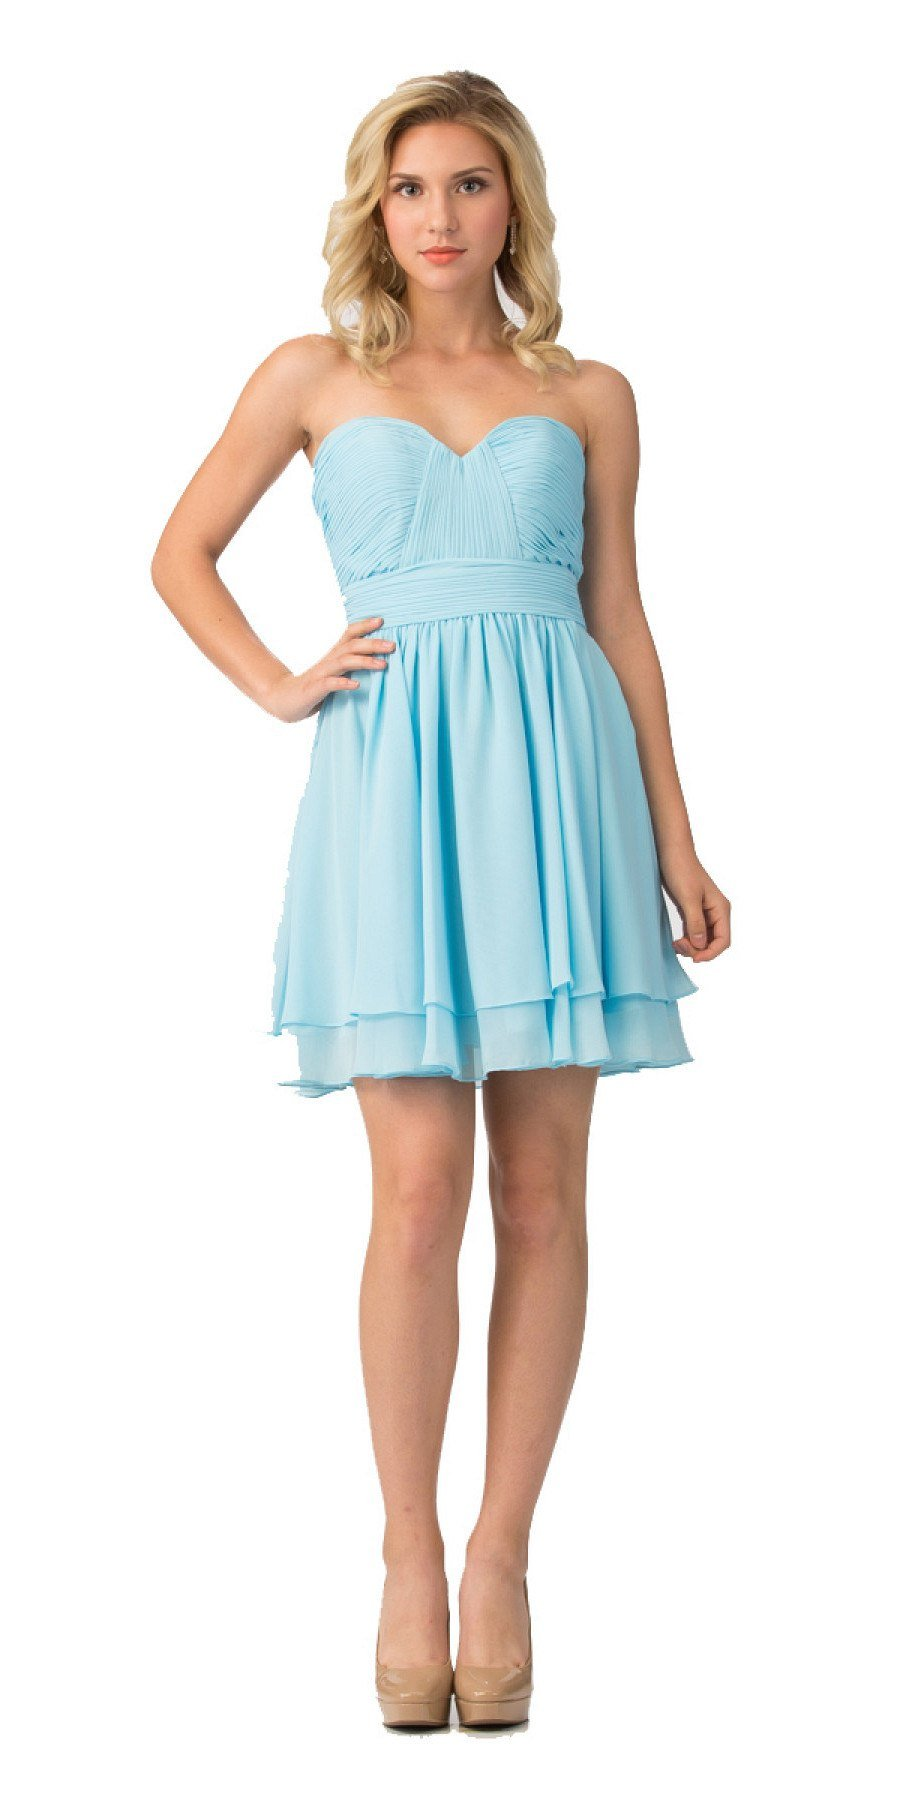 a947899d4a8 ... Starbox USA S6097 Sweetheart Neck Layered Hem Ruched Bodice Light Blue  Short Bridesmaids Dress ...